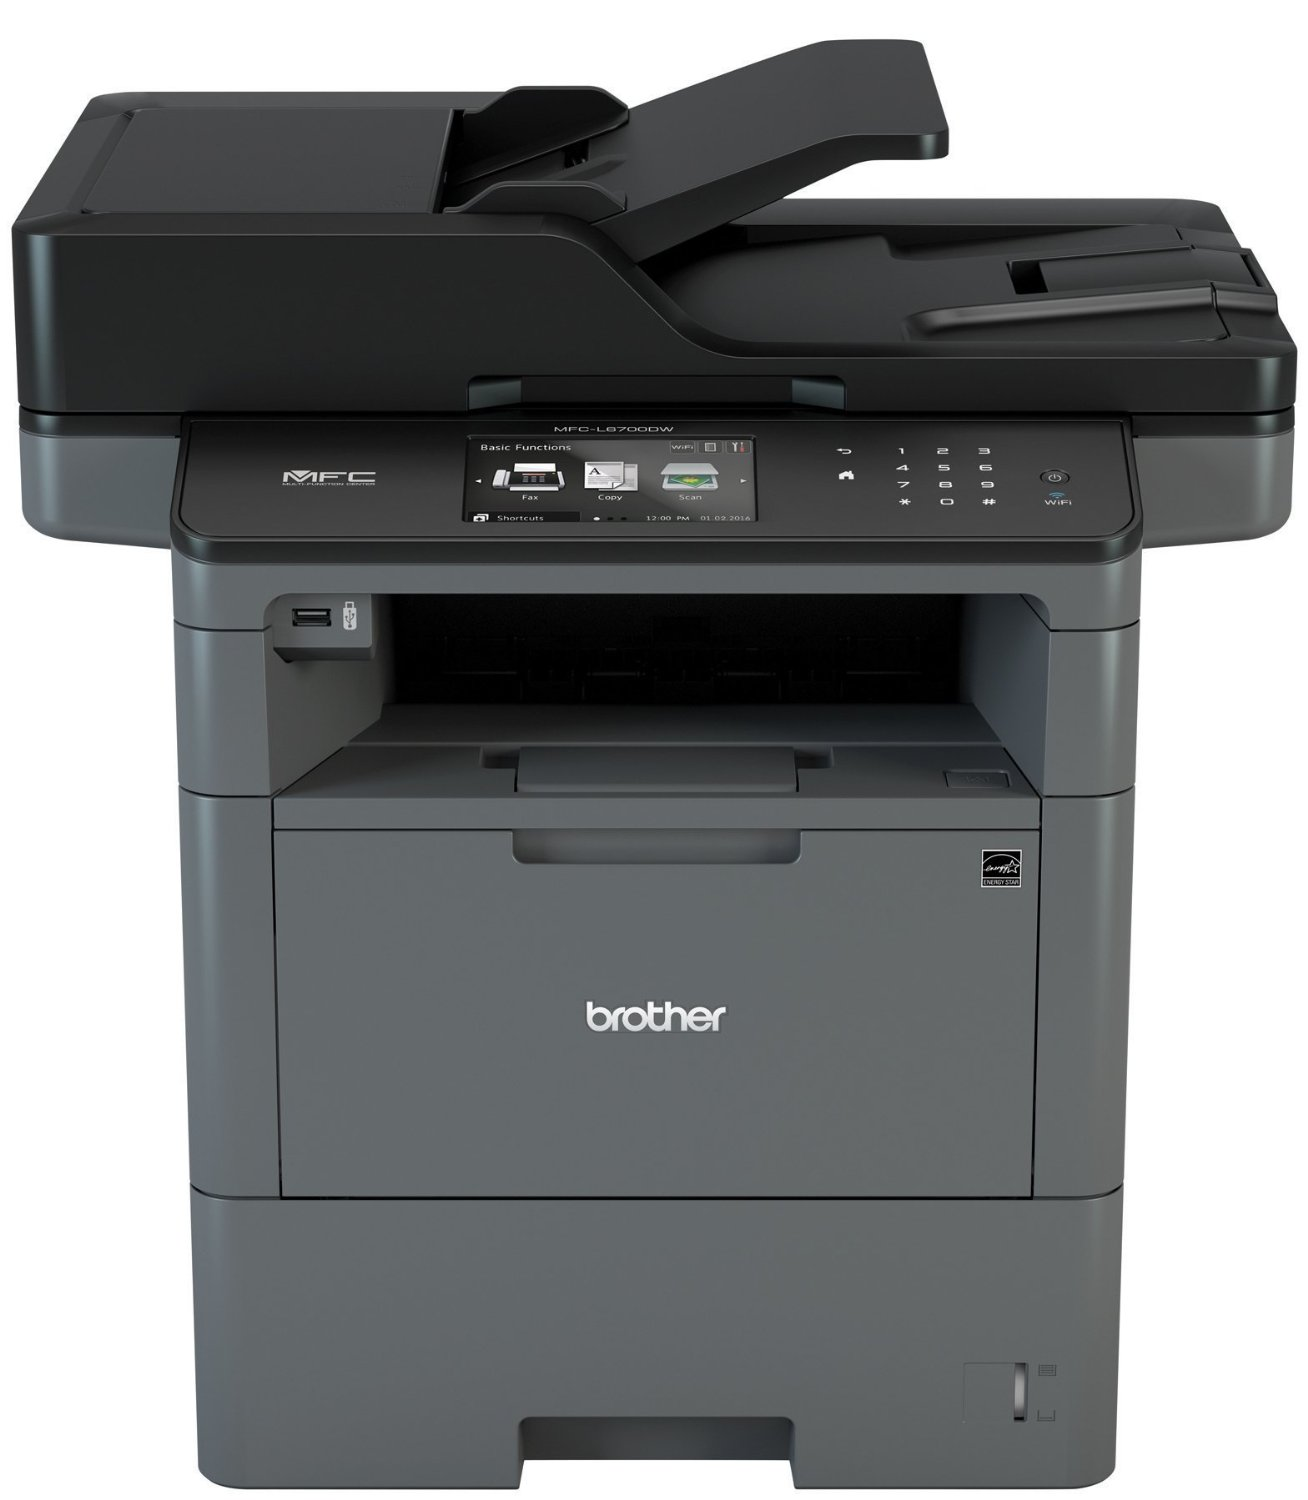 Brother MFC-L6700DW Multifuction, 46ppm, Touch Screen, Wireless, Scan, Copy, Fax, 2 Side Printing